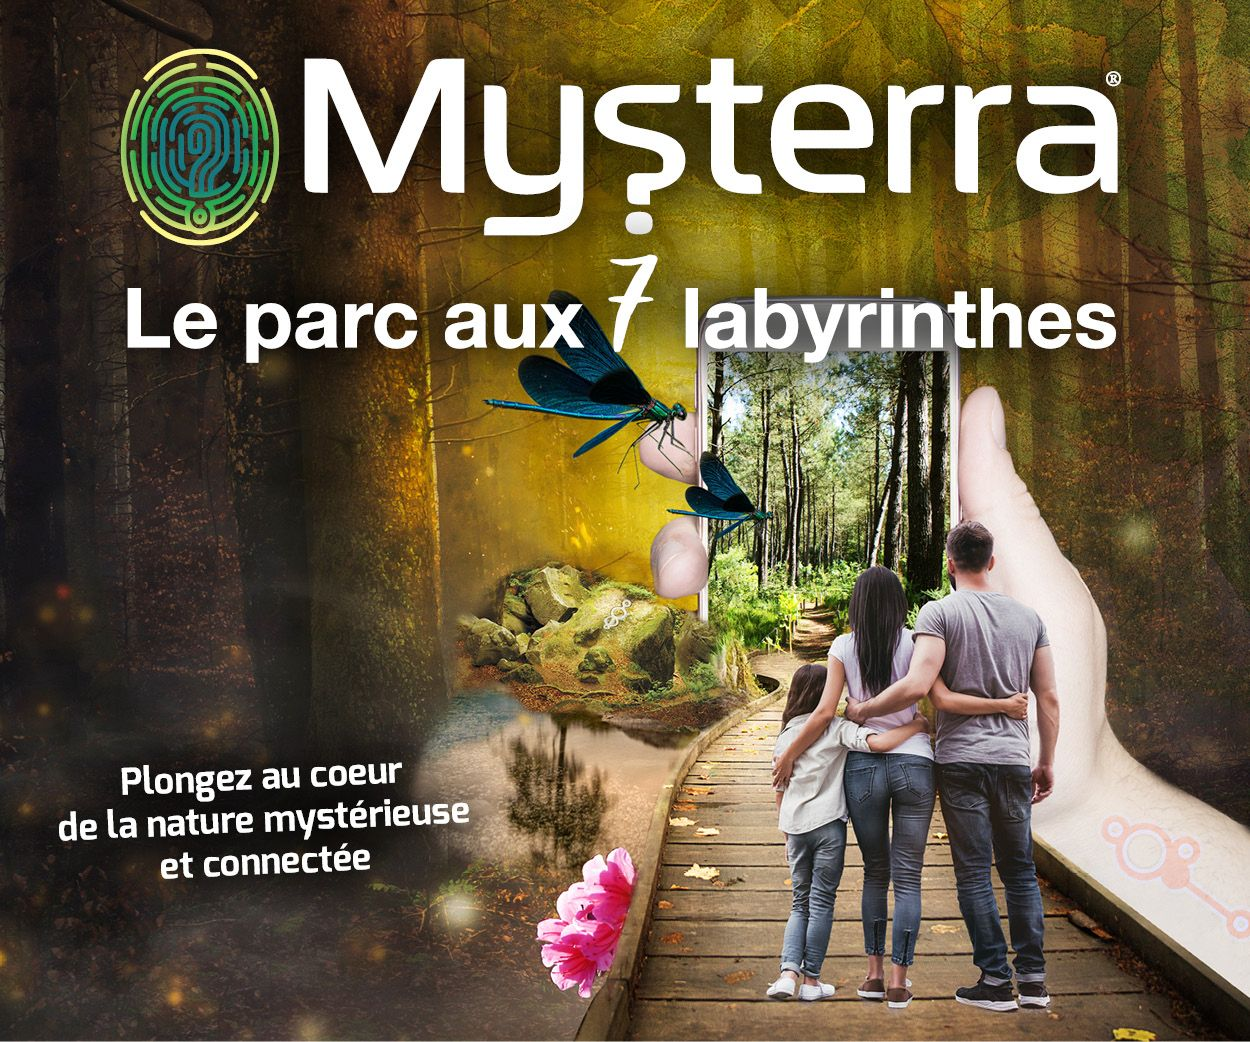 MYSTERRA PARK Montendre South West France